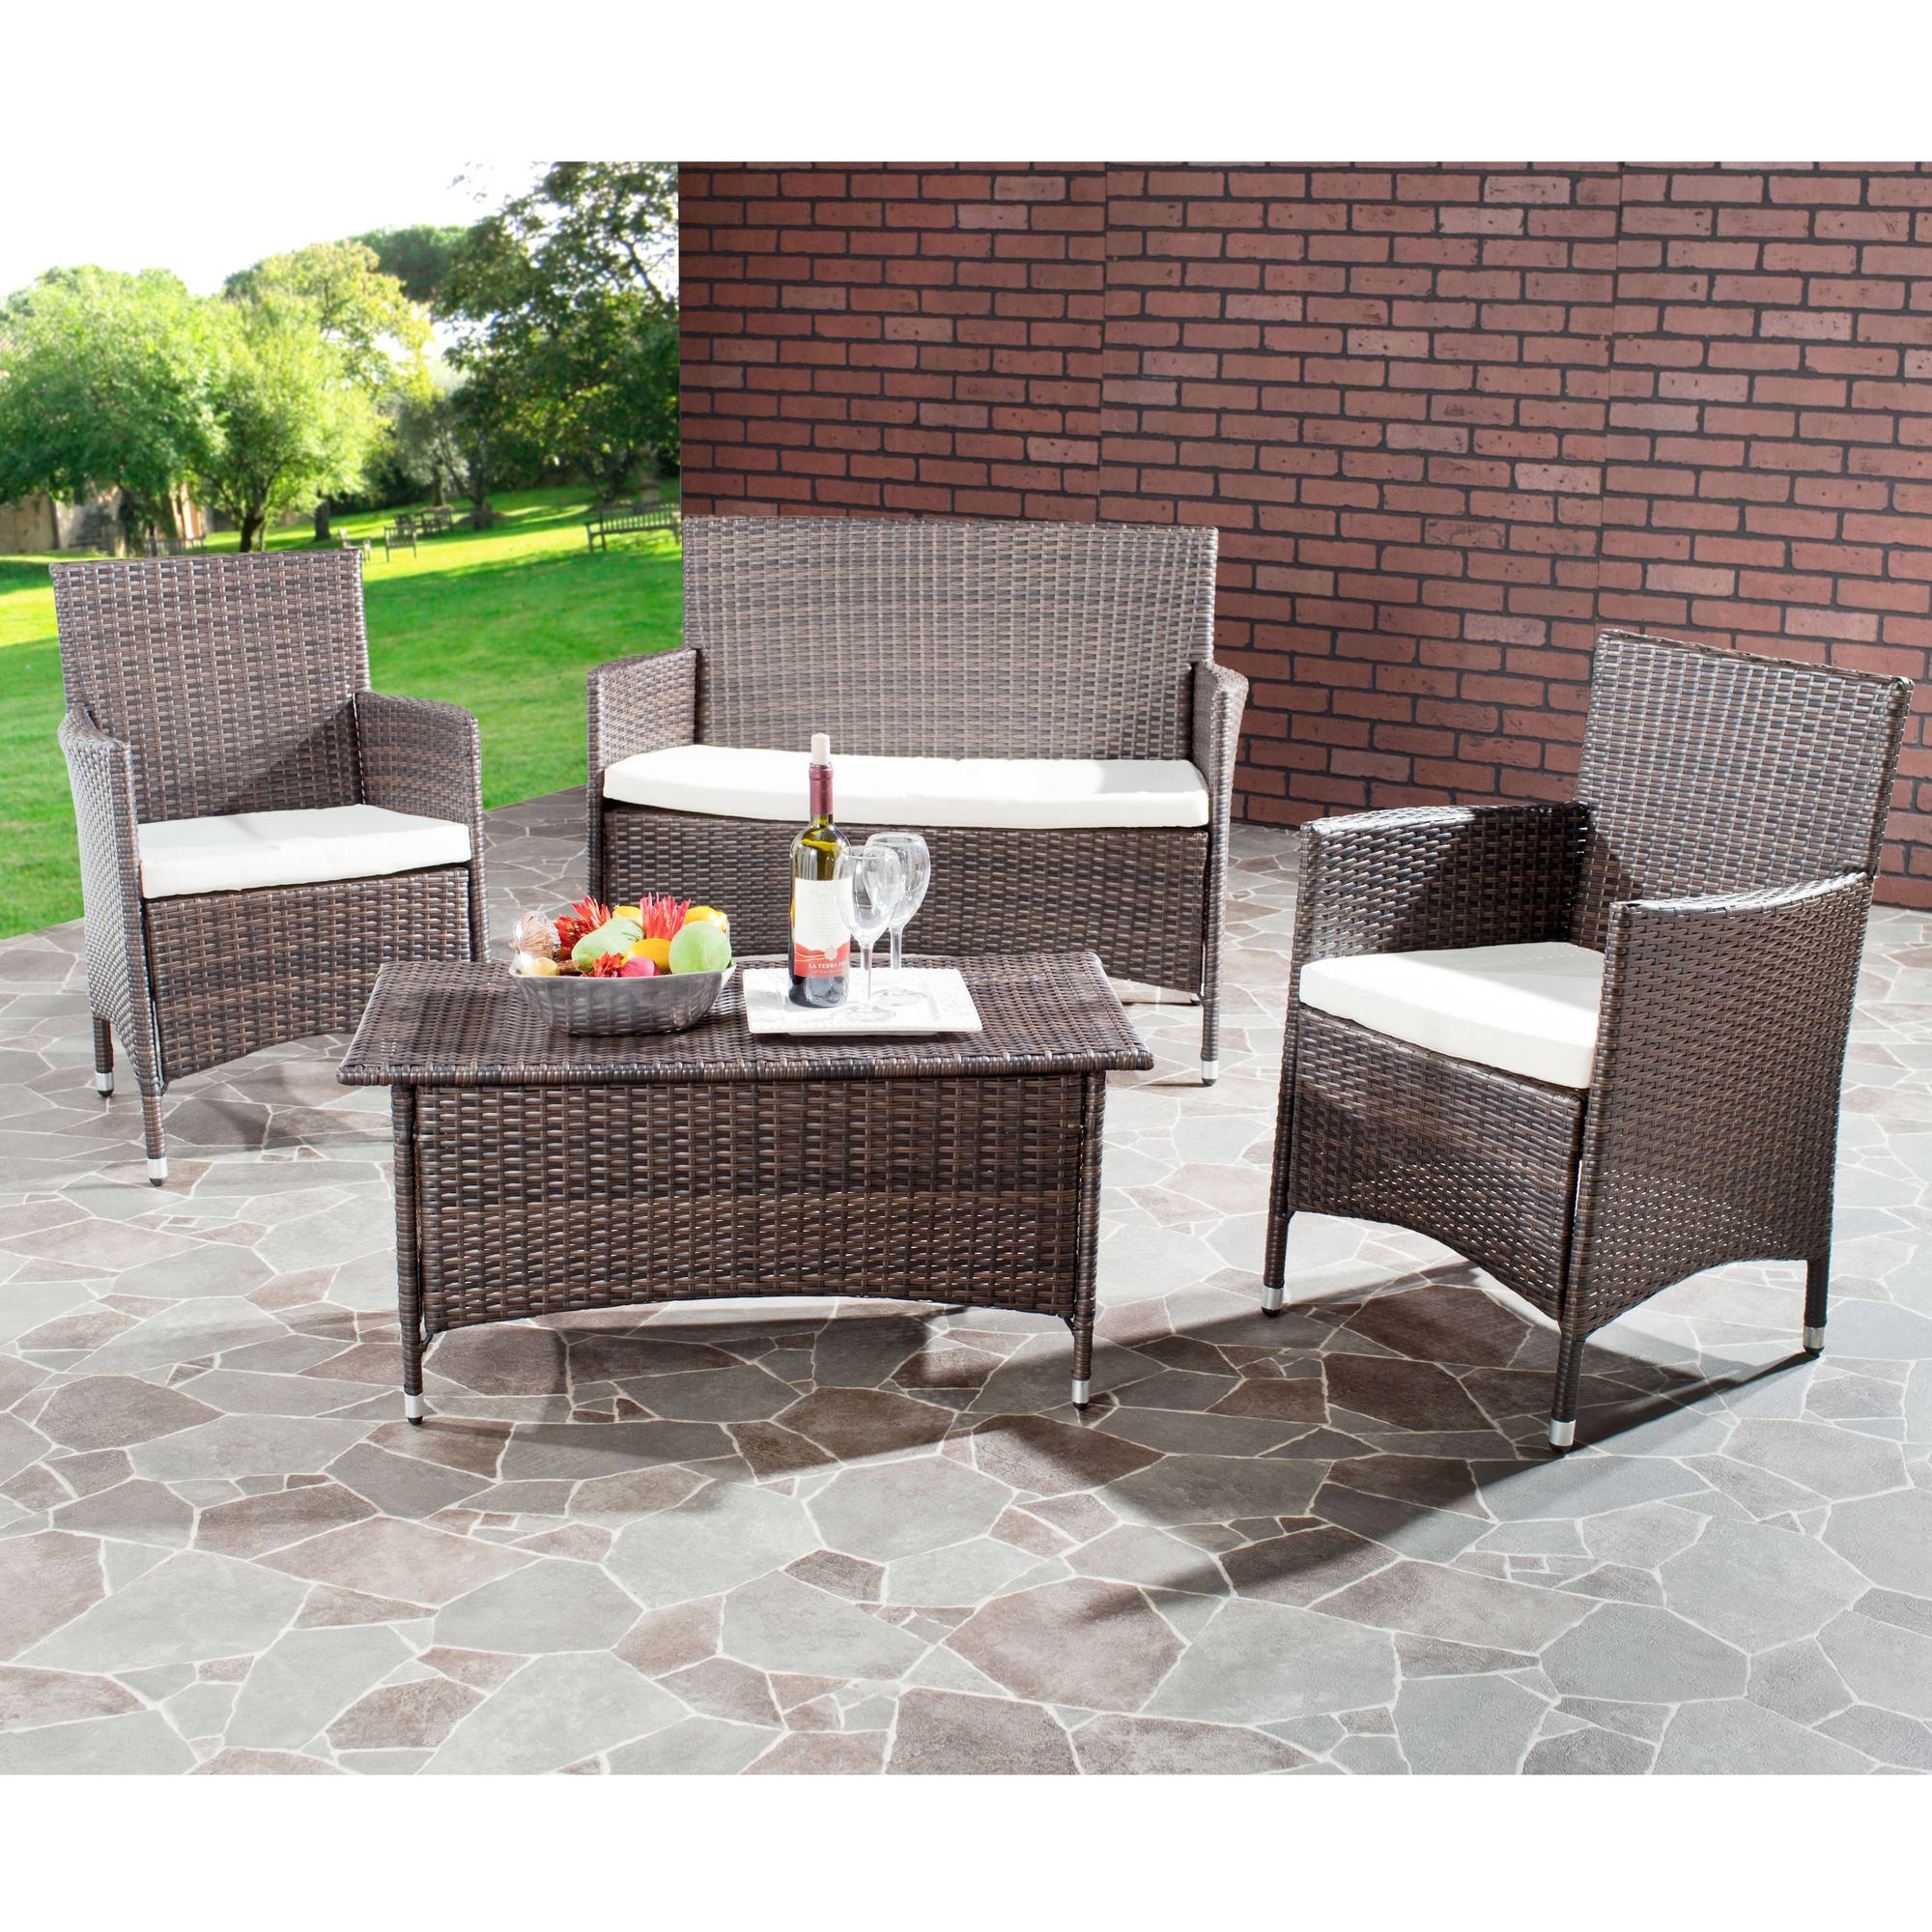 Safavieh Mojavi 4 Piece Wicker Outdoor Set Walmart